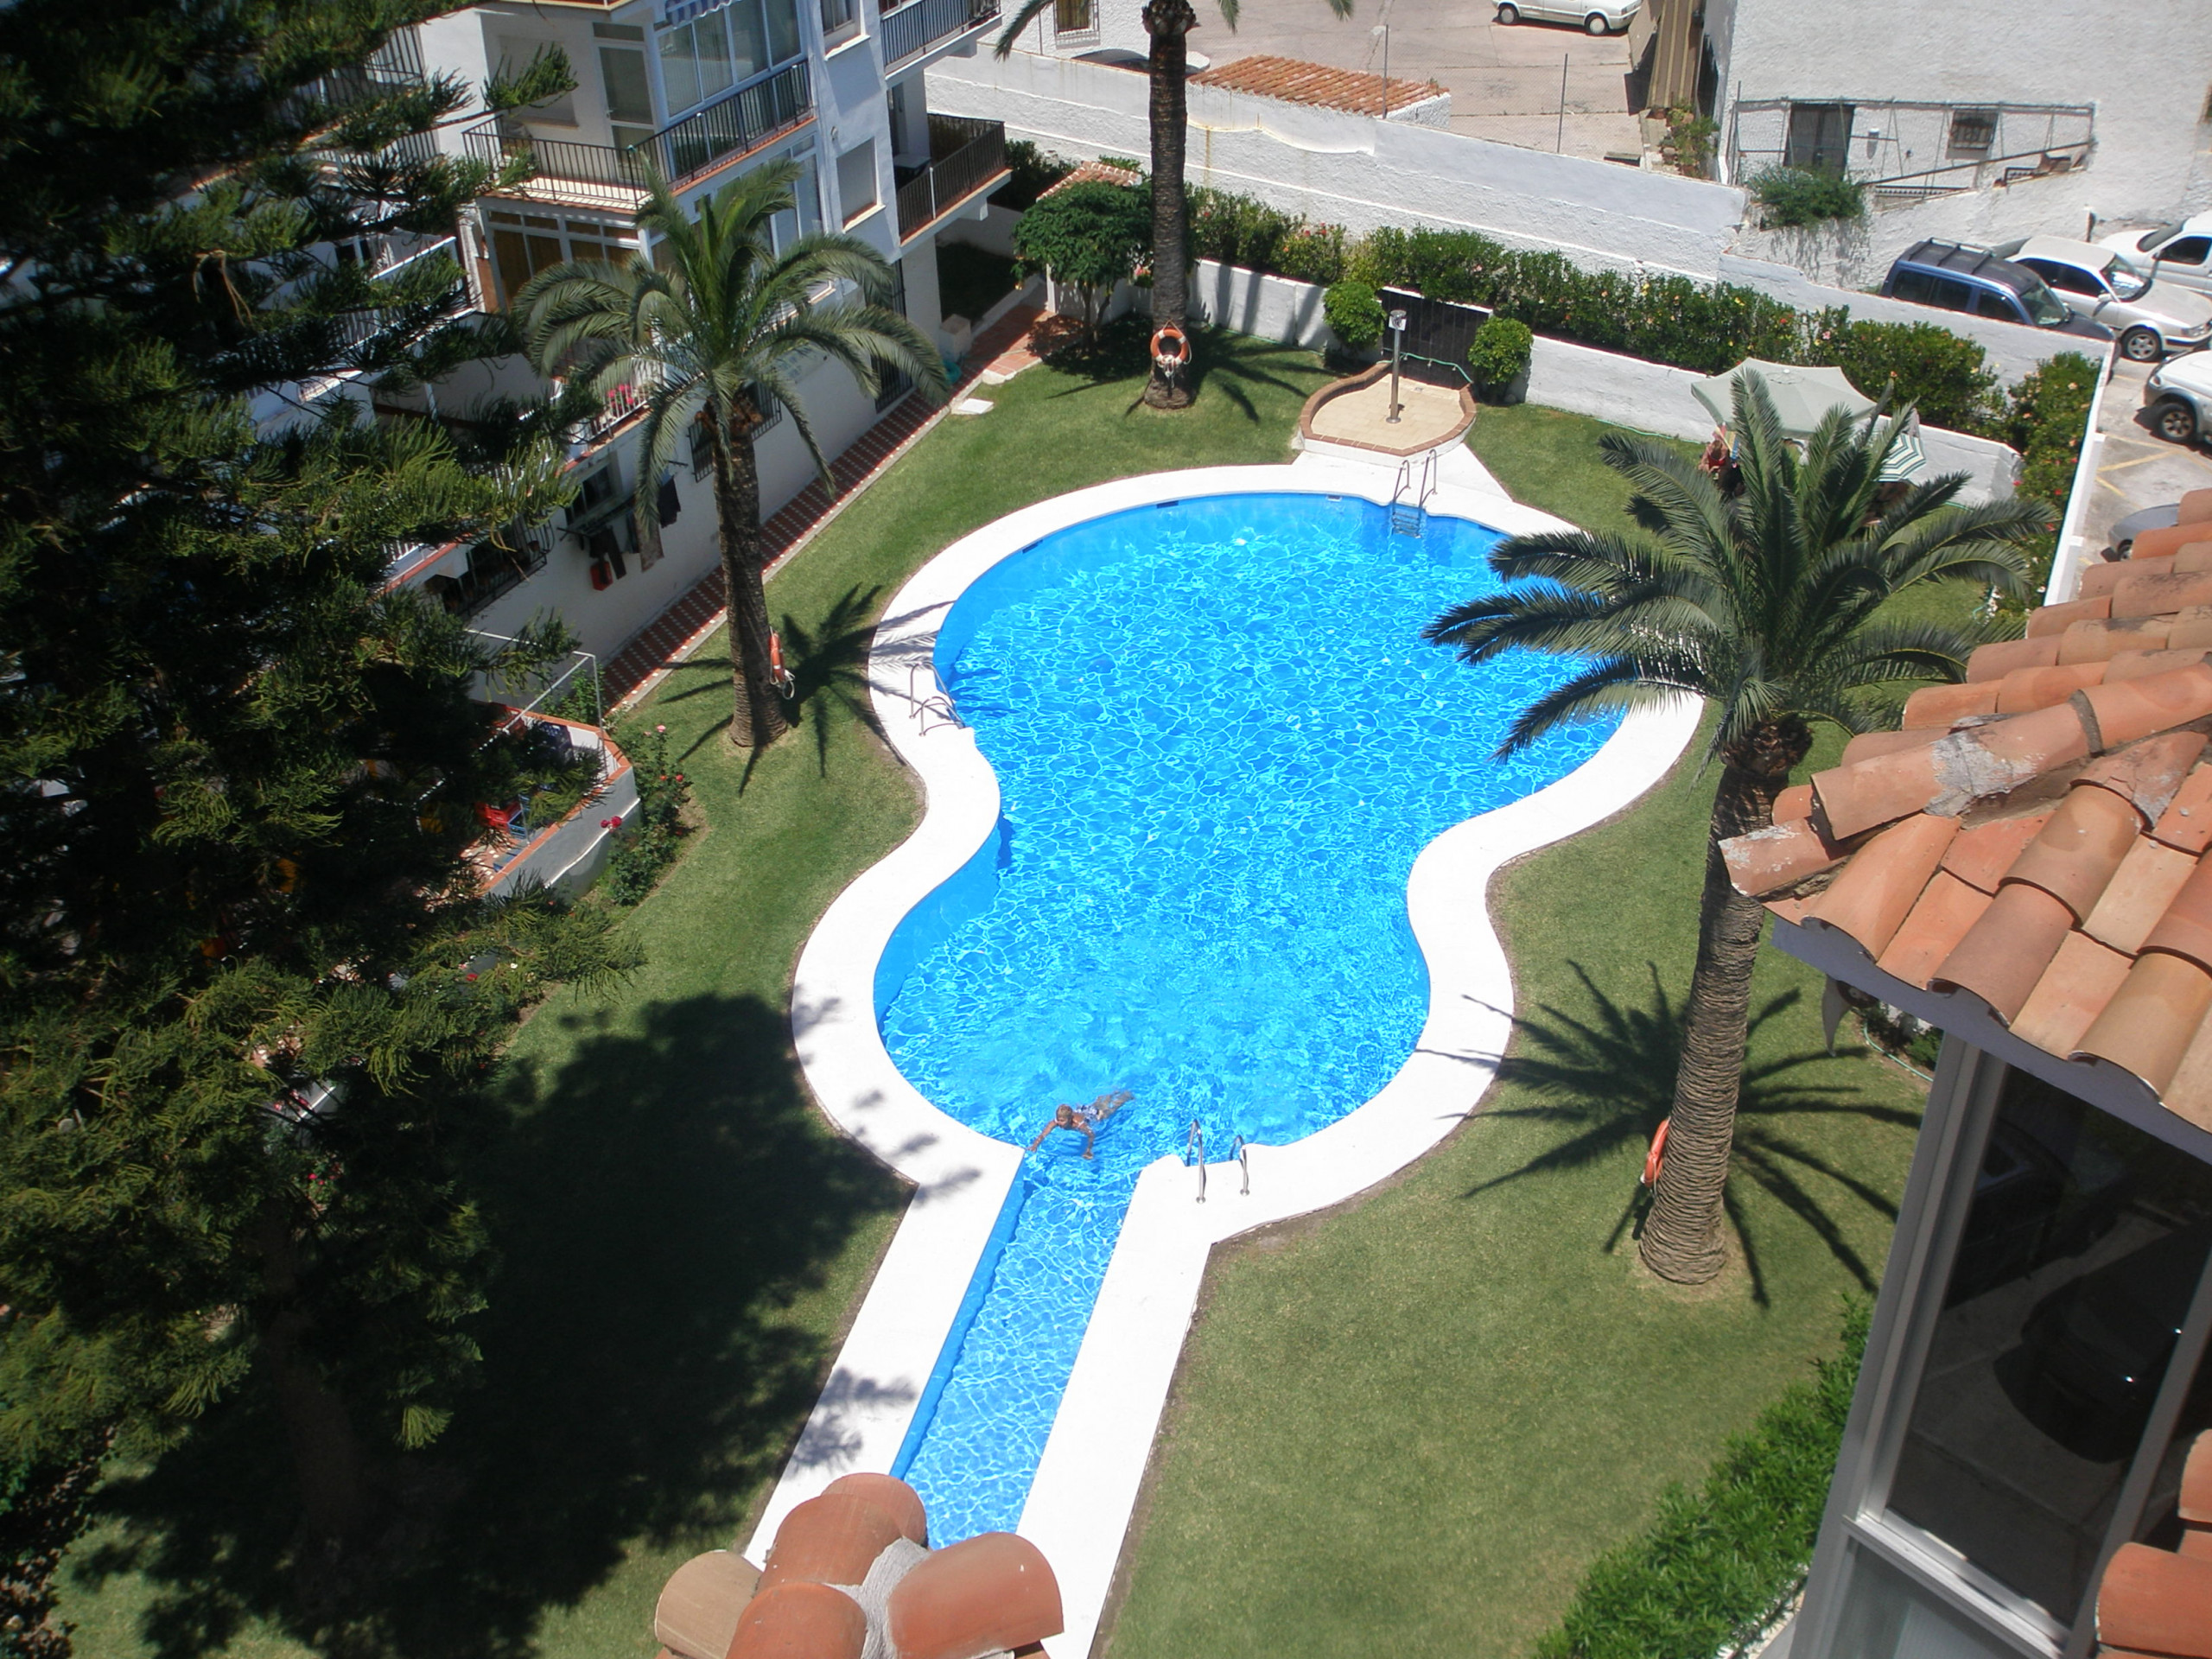 Nerja Apartments For Rent, Apartment Rentals In Nerja Spain